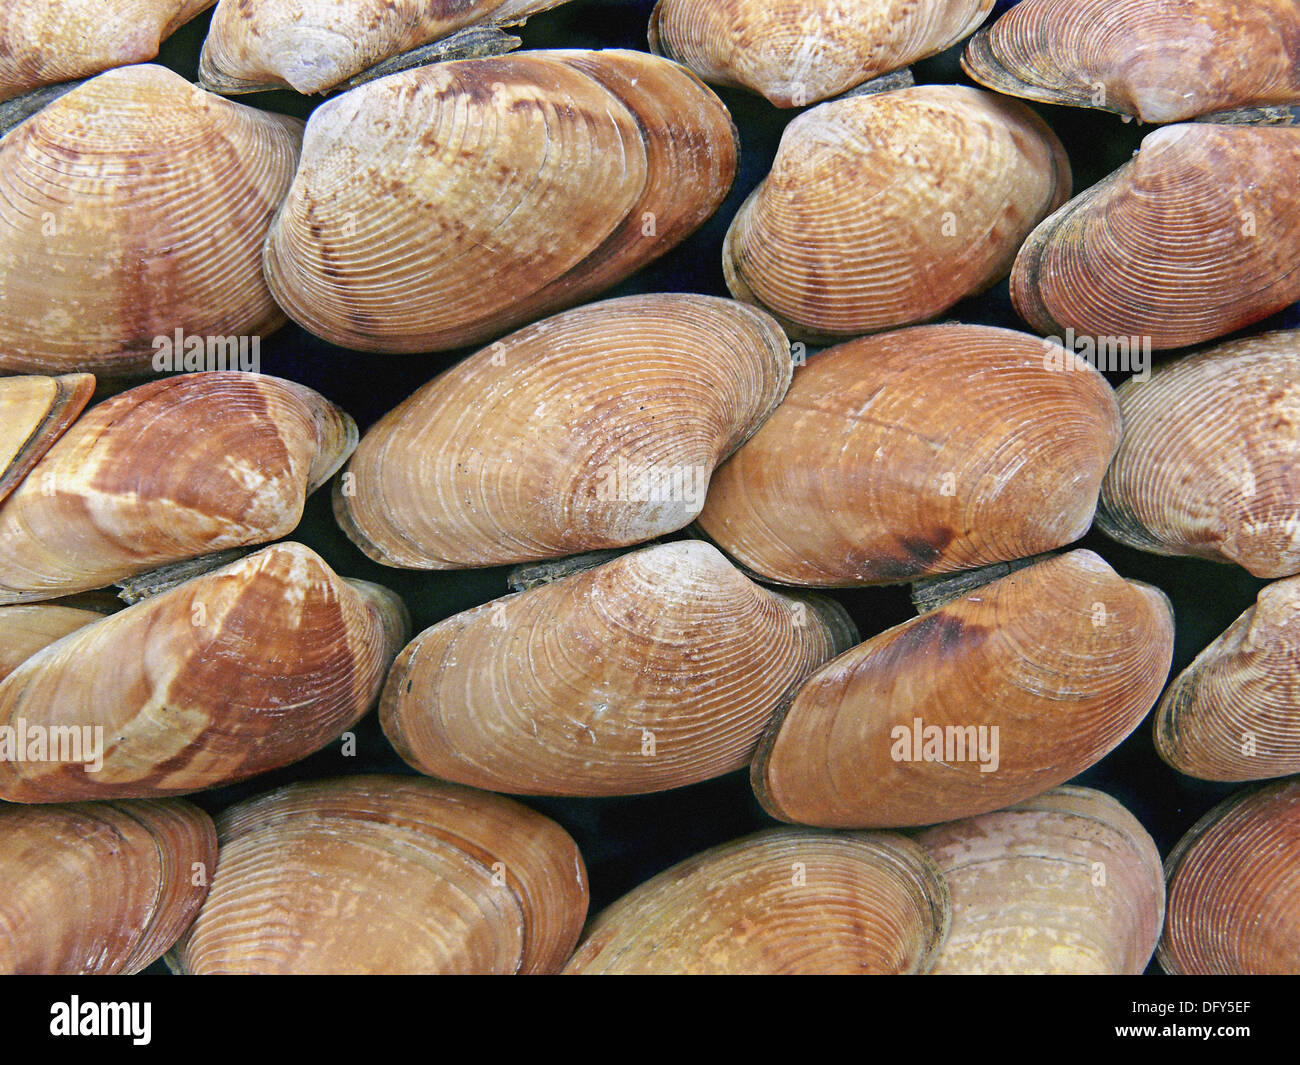 Clams, Class: Bivalvia, Representative mollusks. Bivalves have a shell with two halves. Filter feeders, they take Stock Photo